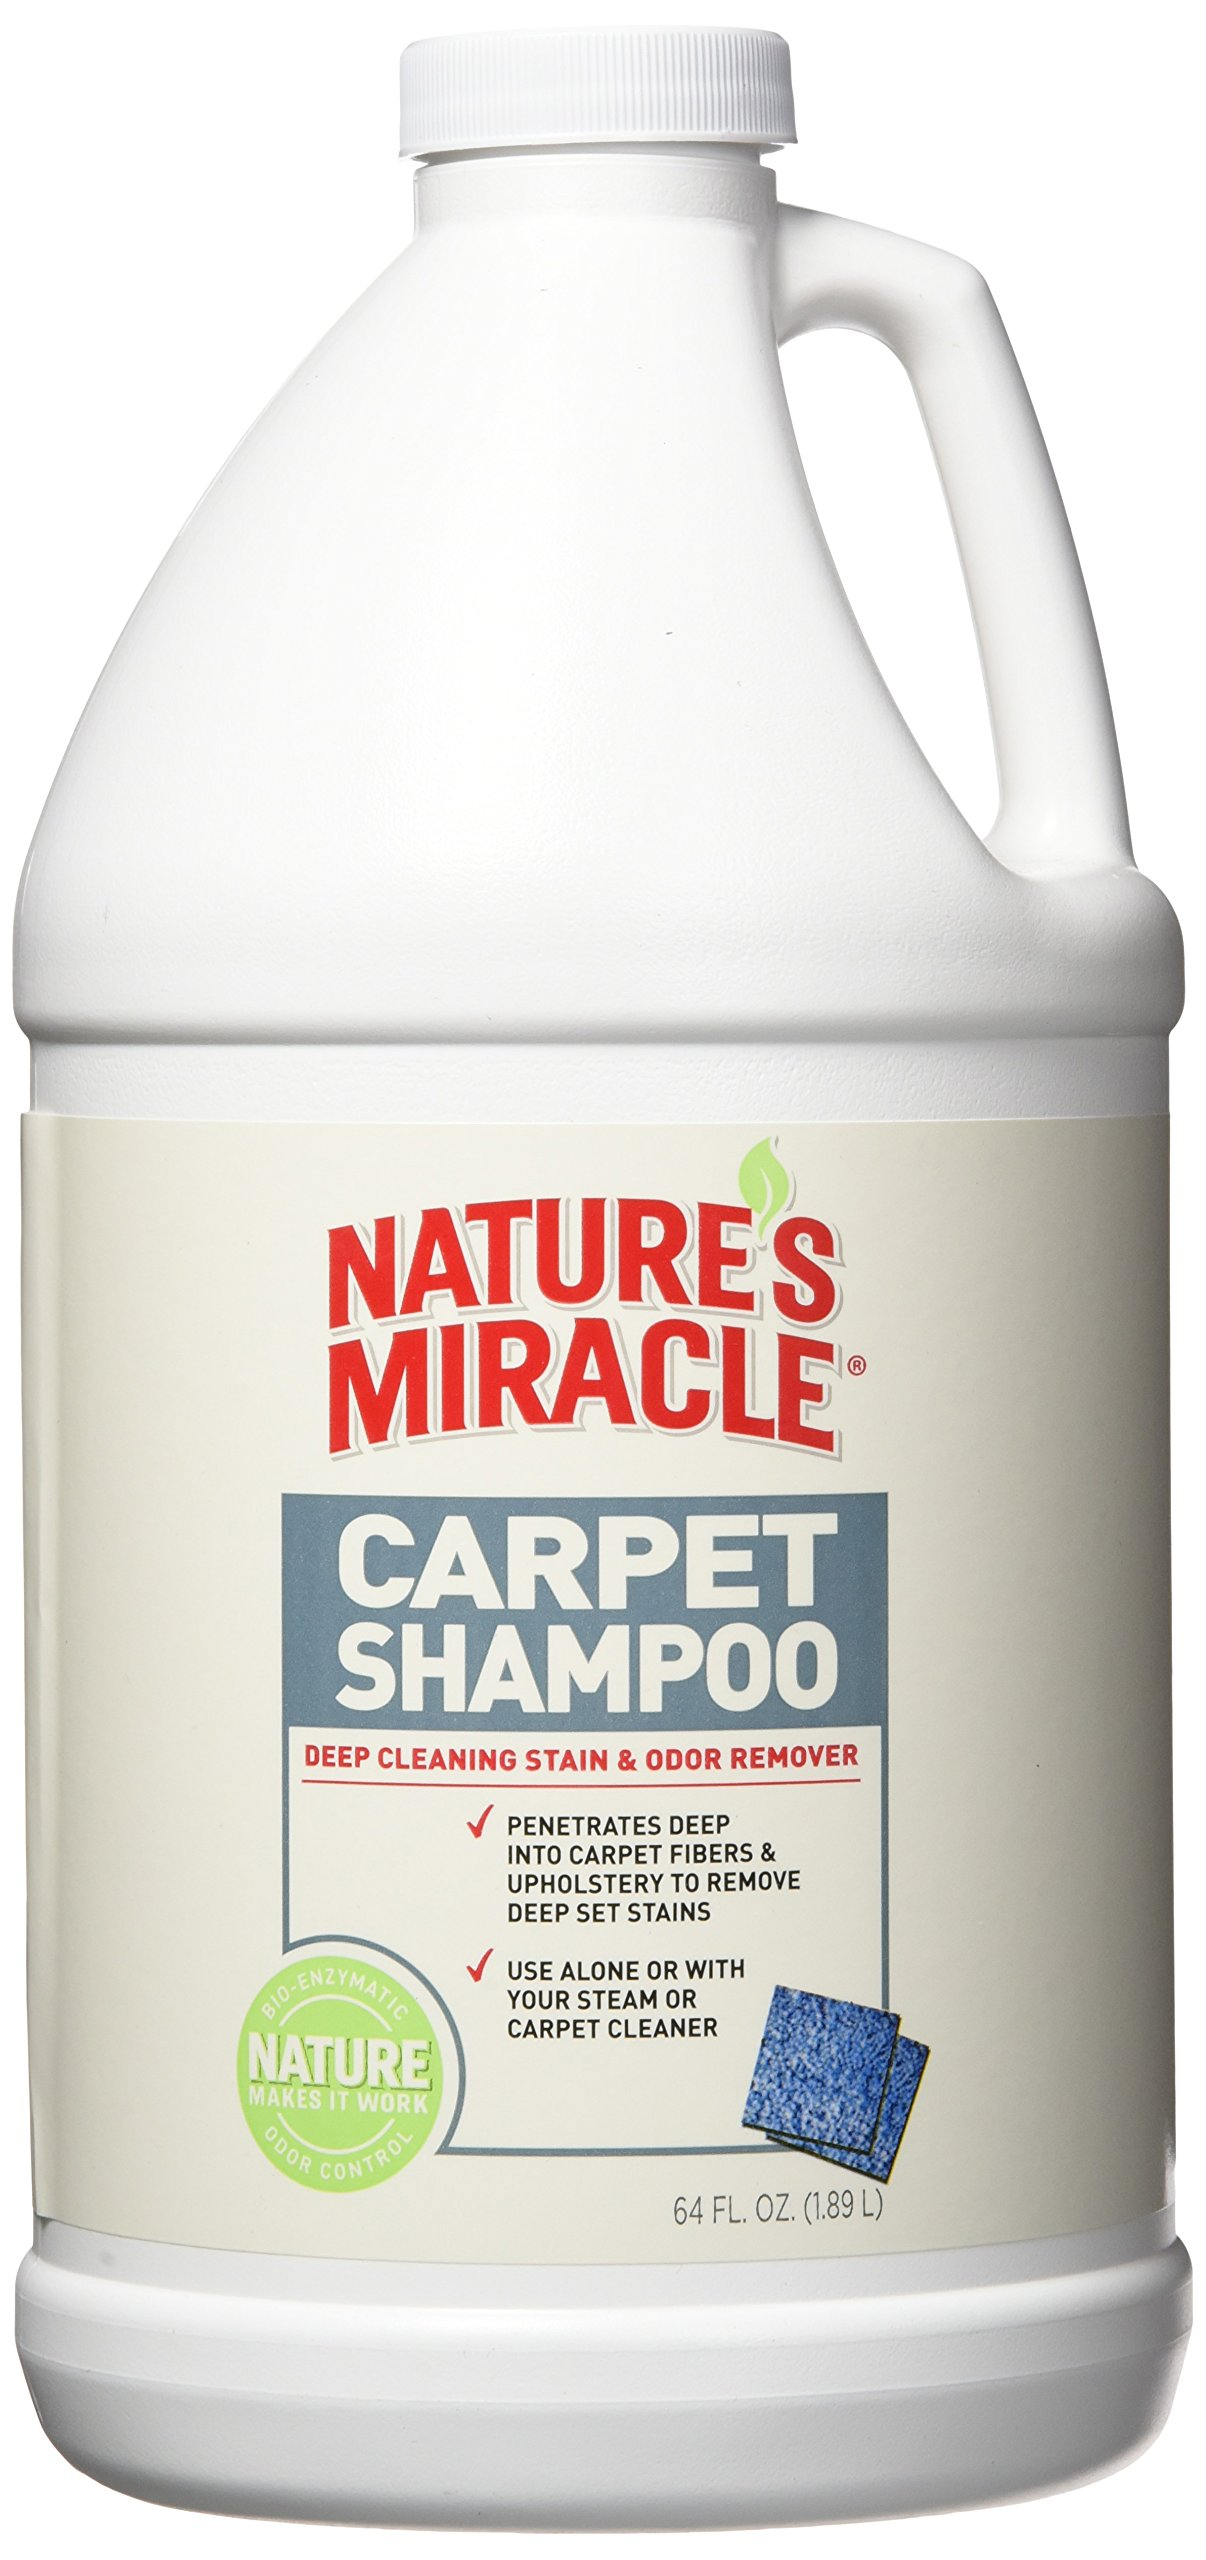 Nature's Miracle Deep Cleaning Pet Stain and Odor Carpet Shampoo 64oz (1/2 Gallon) by Nature's Miracle